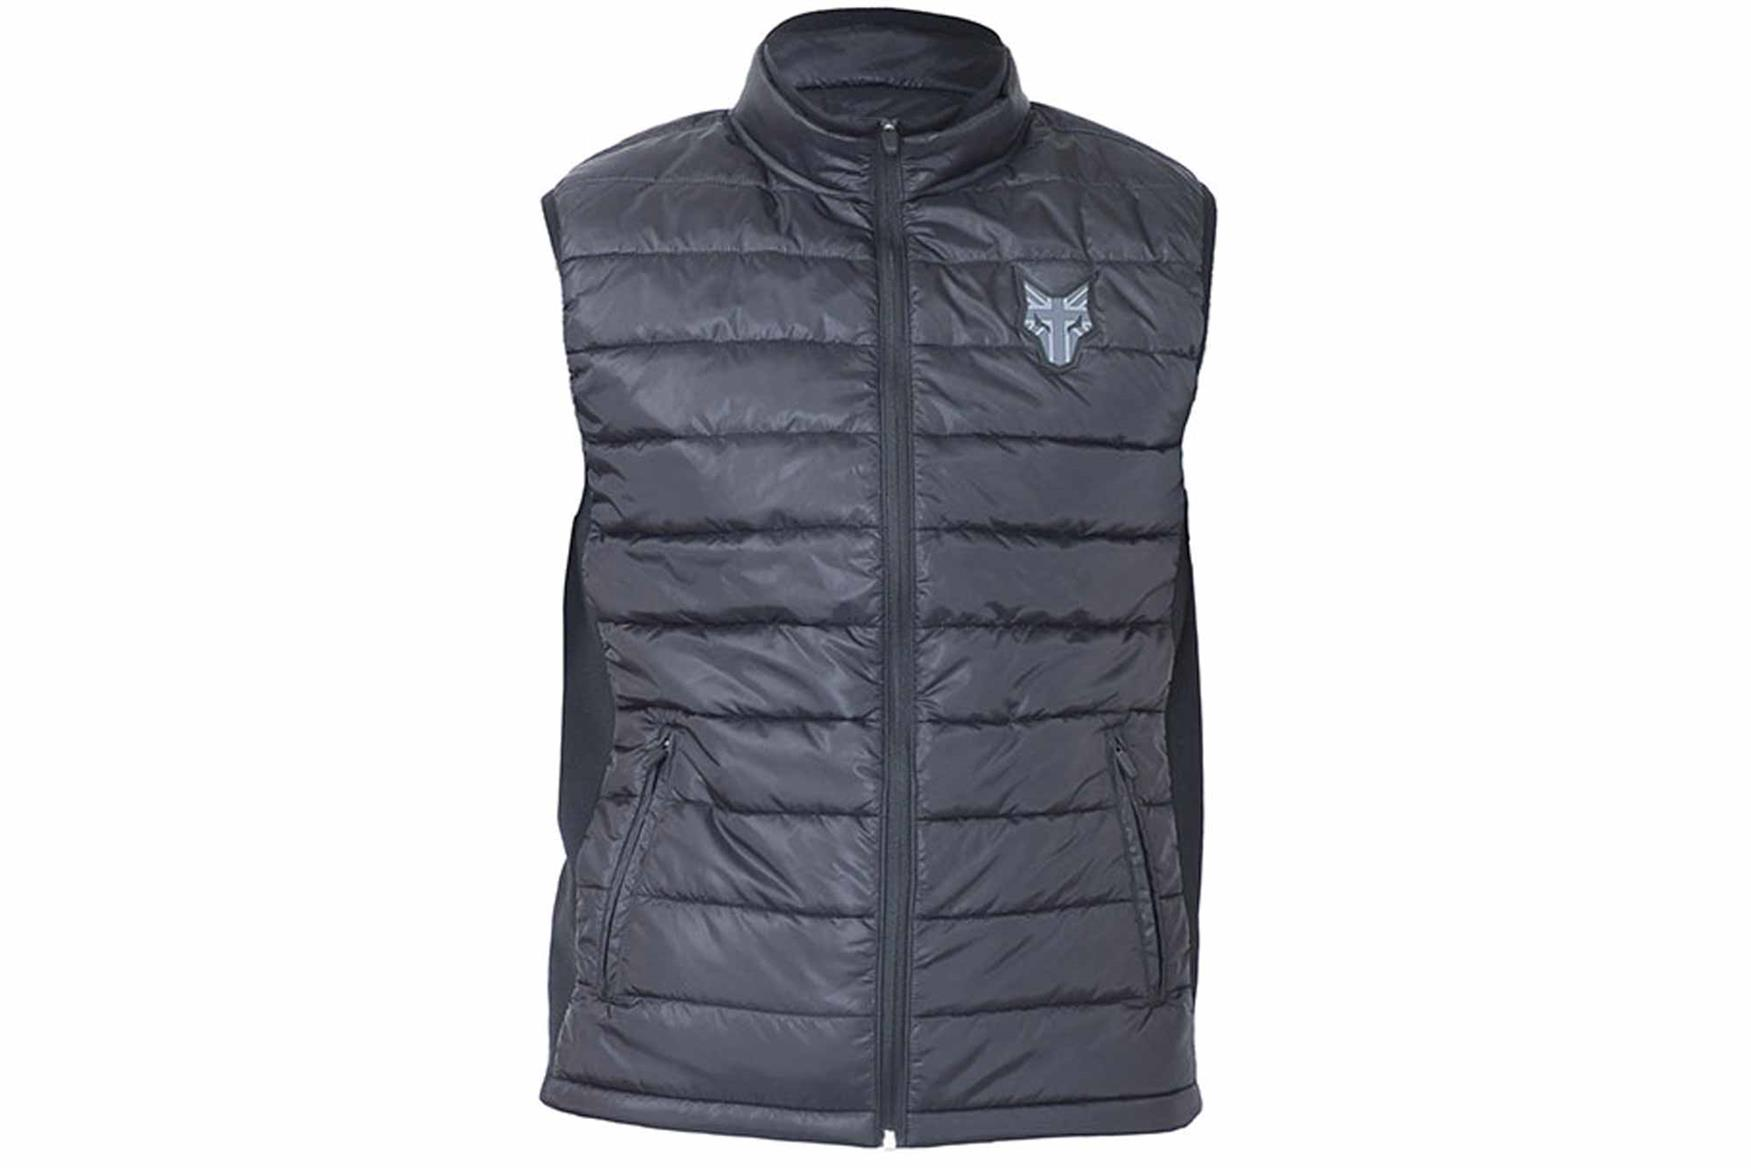 The Wolf Freestyle gilet